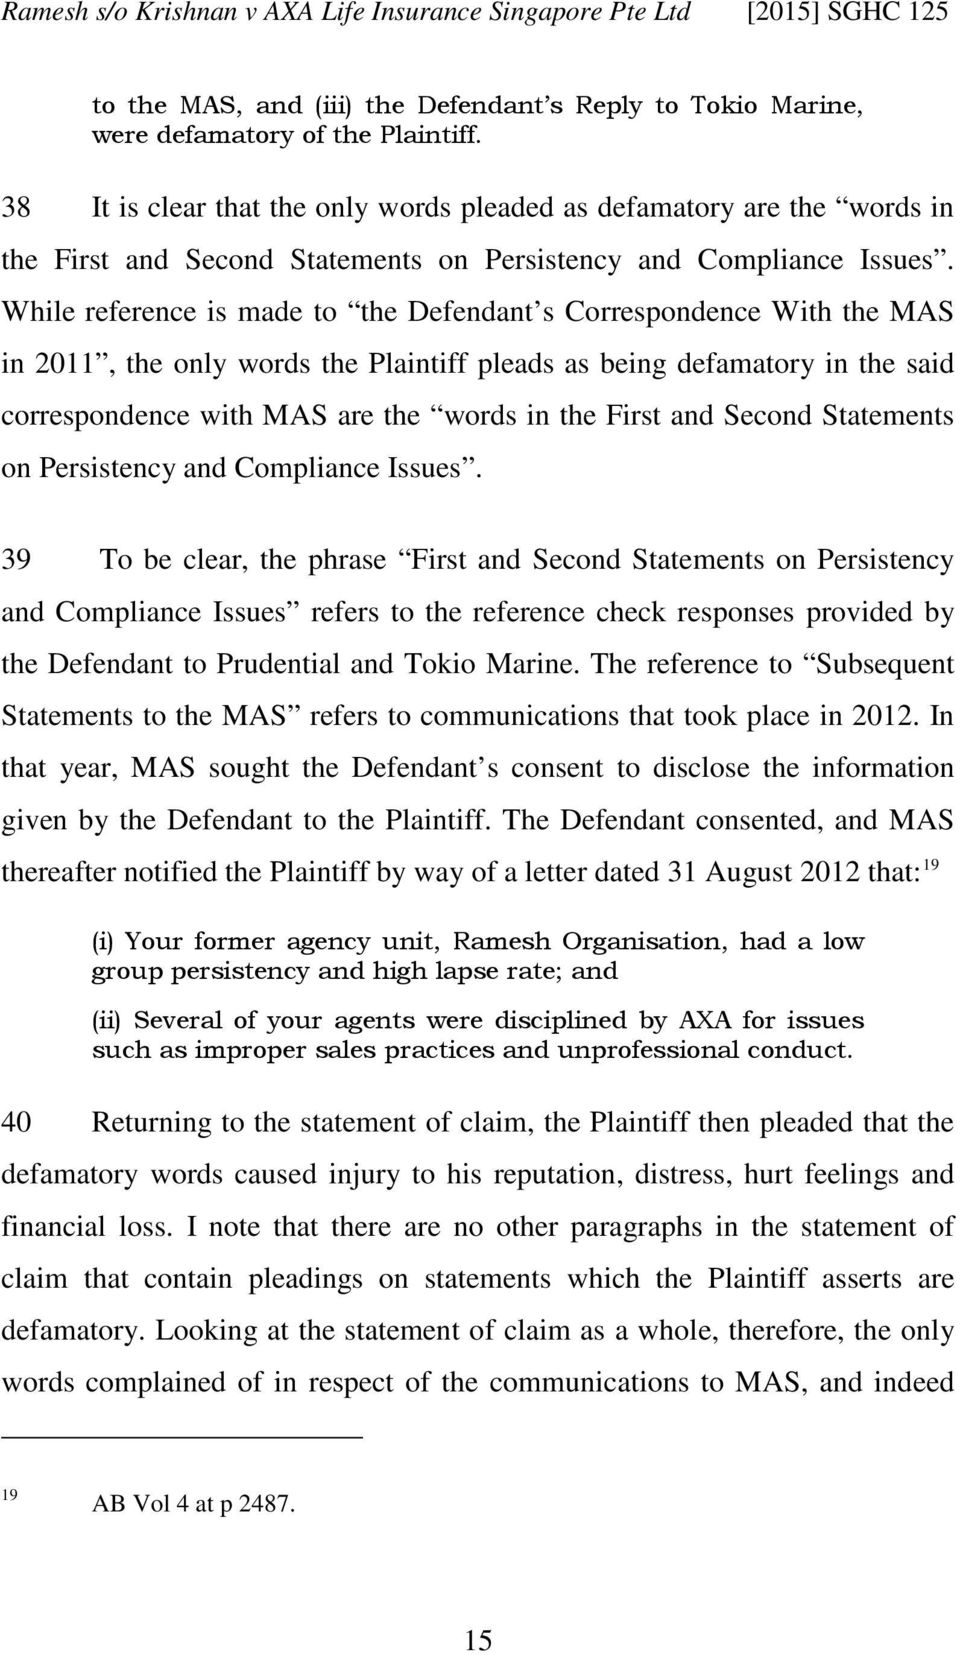 While reference is made to the Defendant s Correspondence With the MAS in 2011, the only words the Plaintiff pleads as being defamatory in the said correspondence with MAS are the words in the First